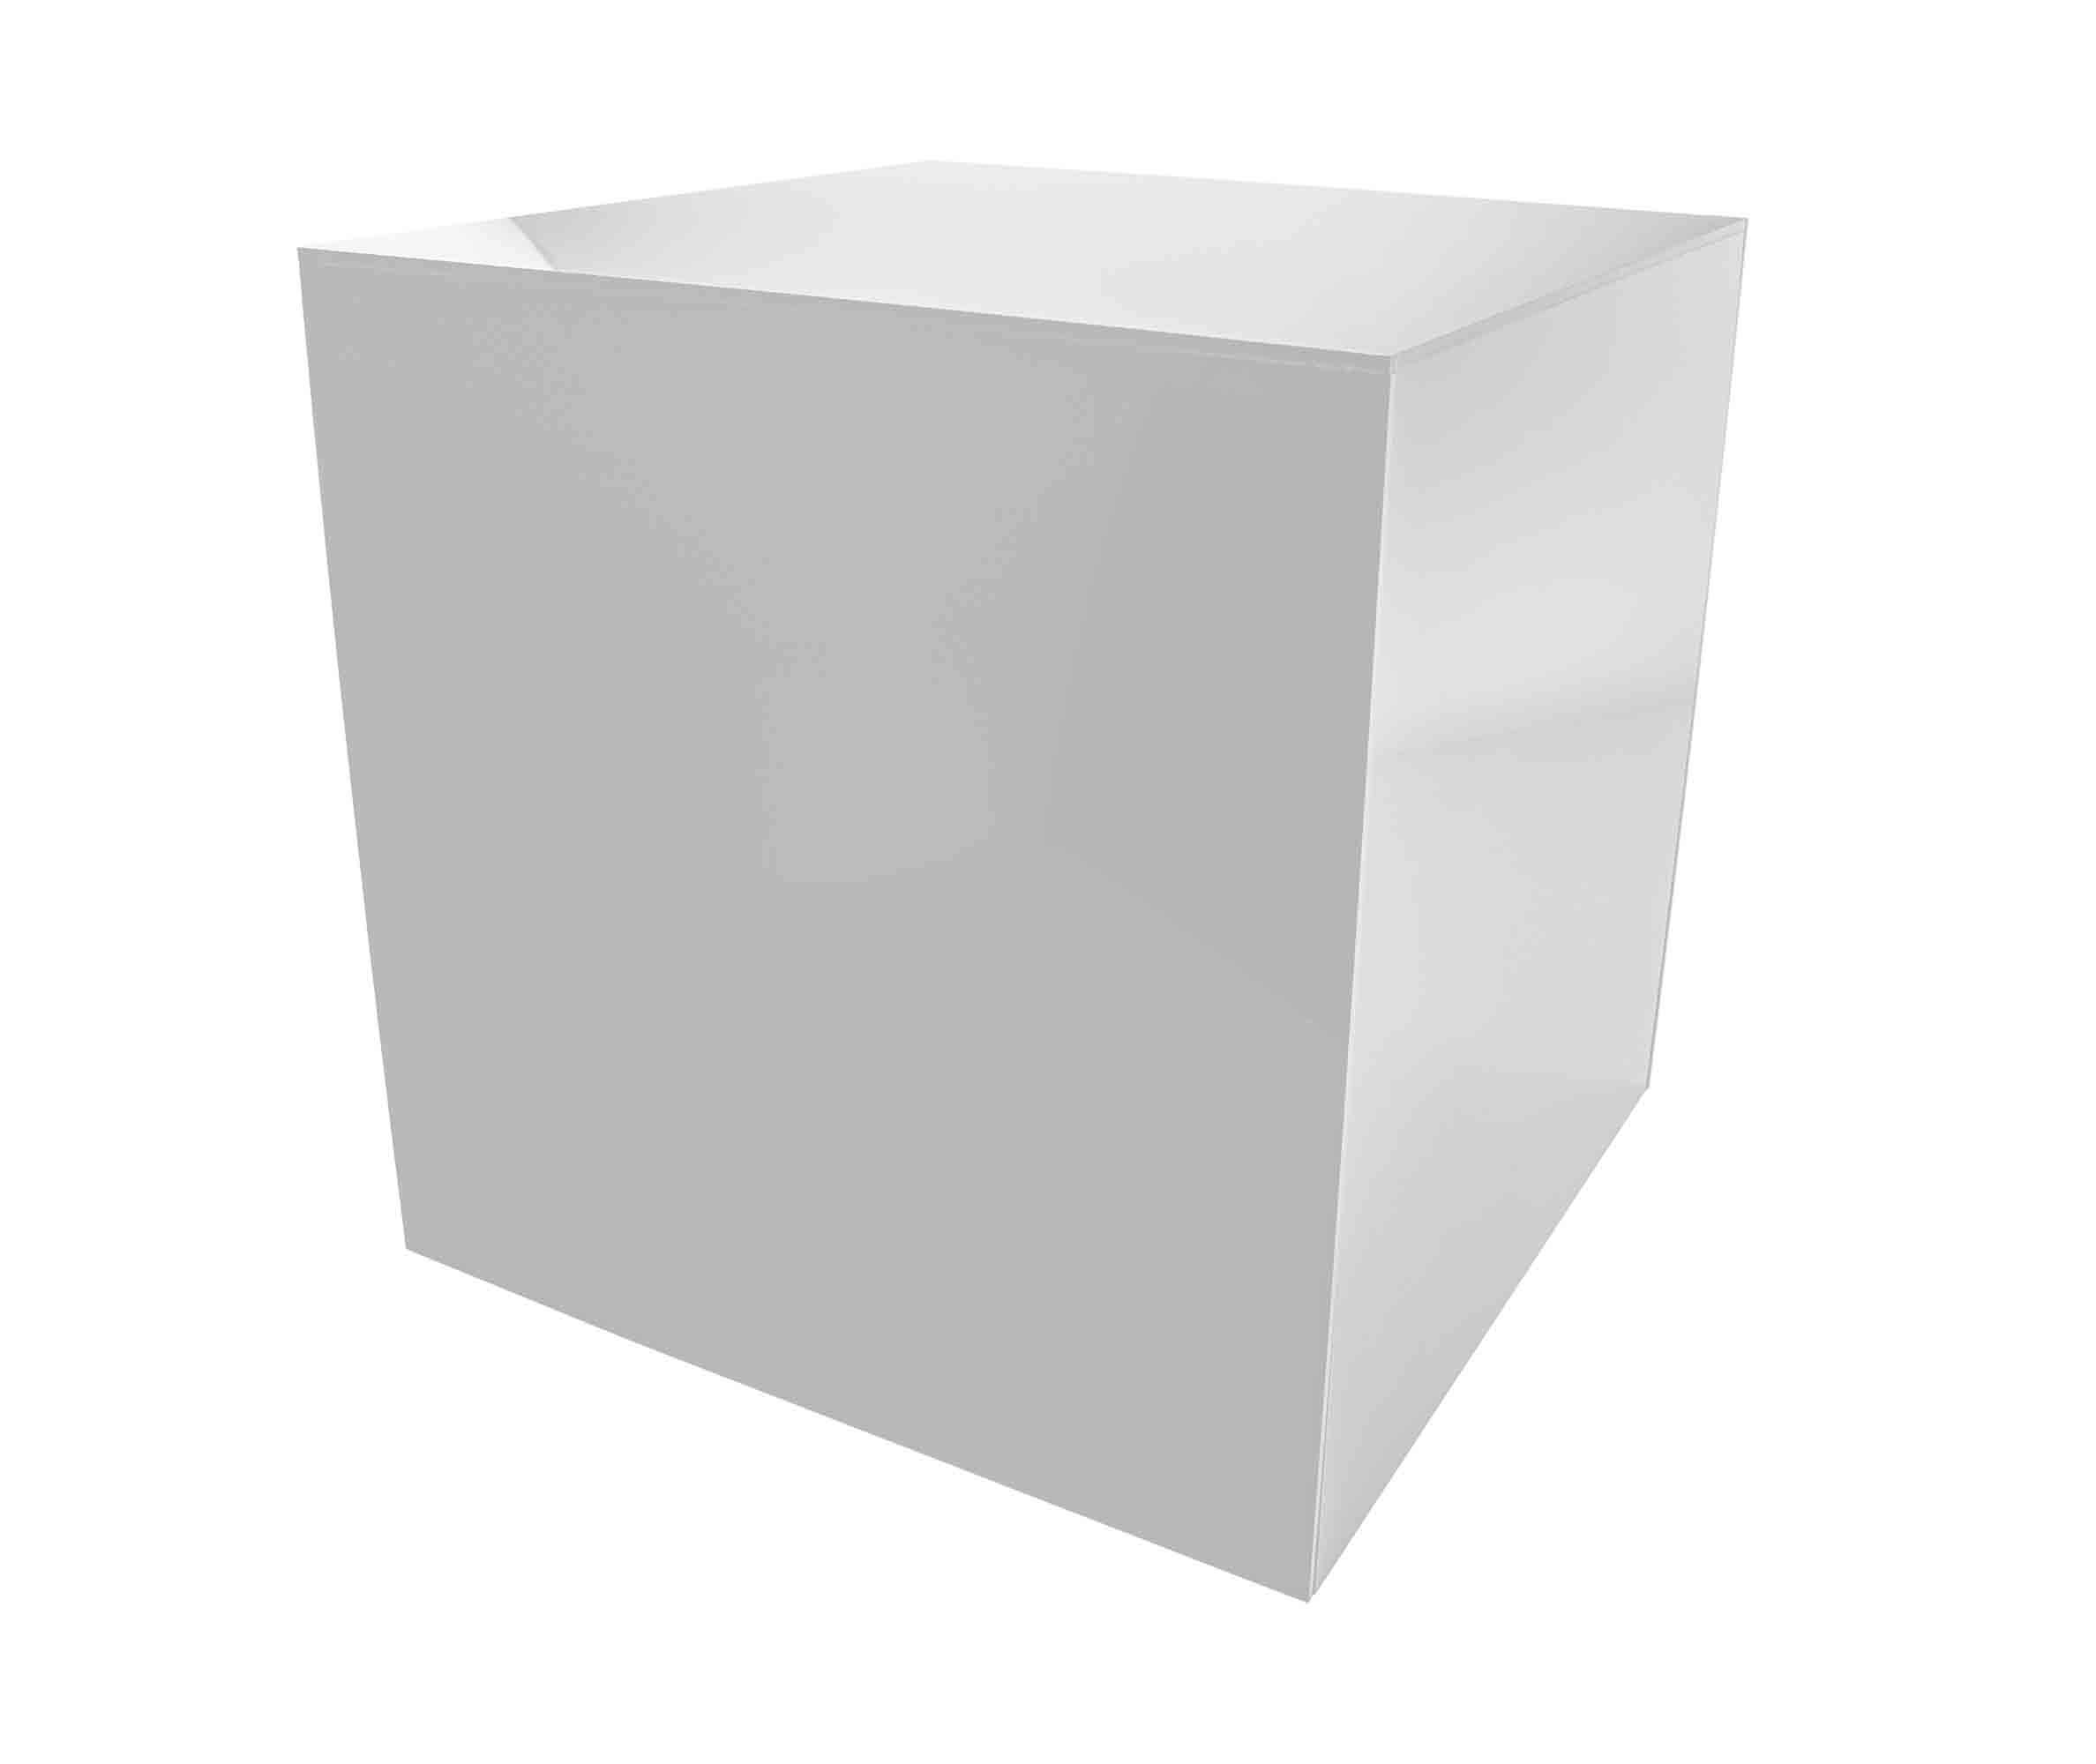 Marketing Holders Pedestal Stand for Art Display Cube for Baseballs Retail Riser Collectible Cover 5 Sided be for Baseballs Retail Riser Collectible Cover 5 Sided 12''w x 12''h x 12''d White Pack of 4